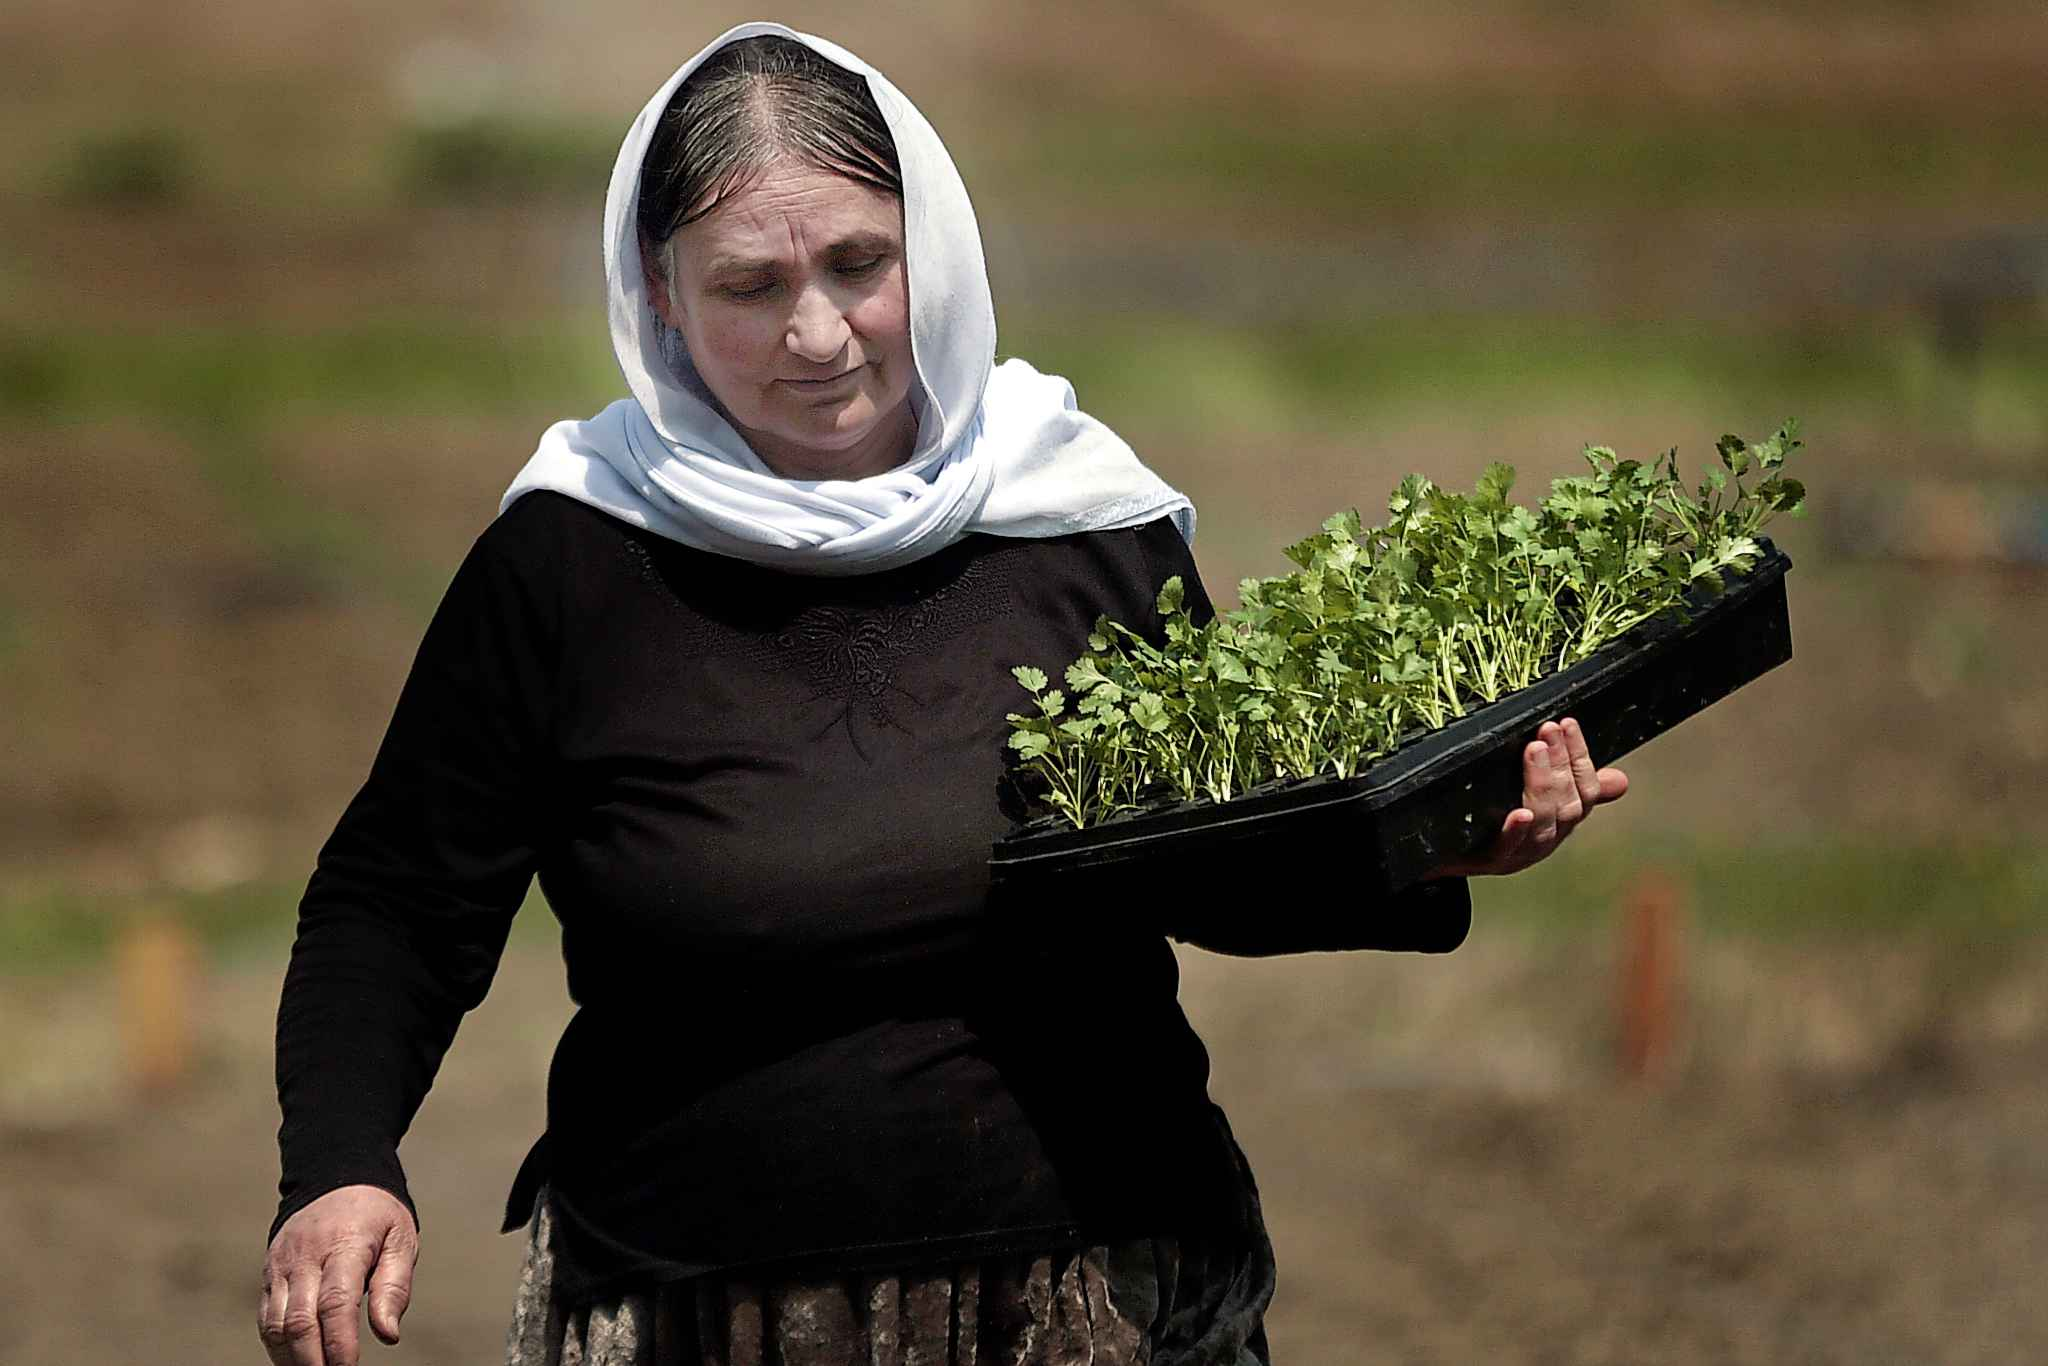 Adol Alyas carries seedlings to be planted at a Yazidi Community Garden near St. François Xavier.